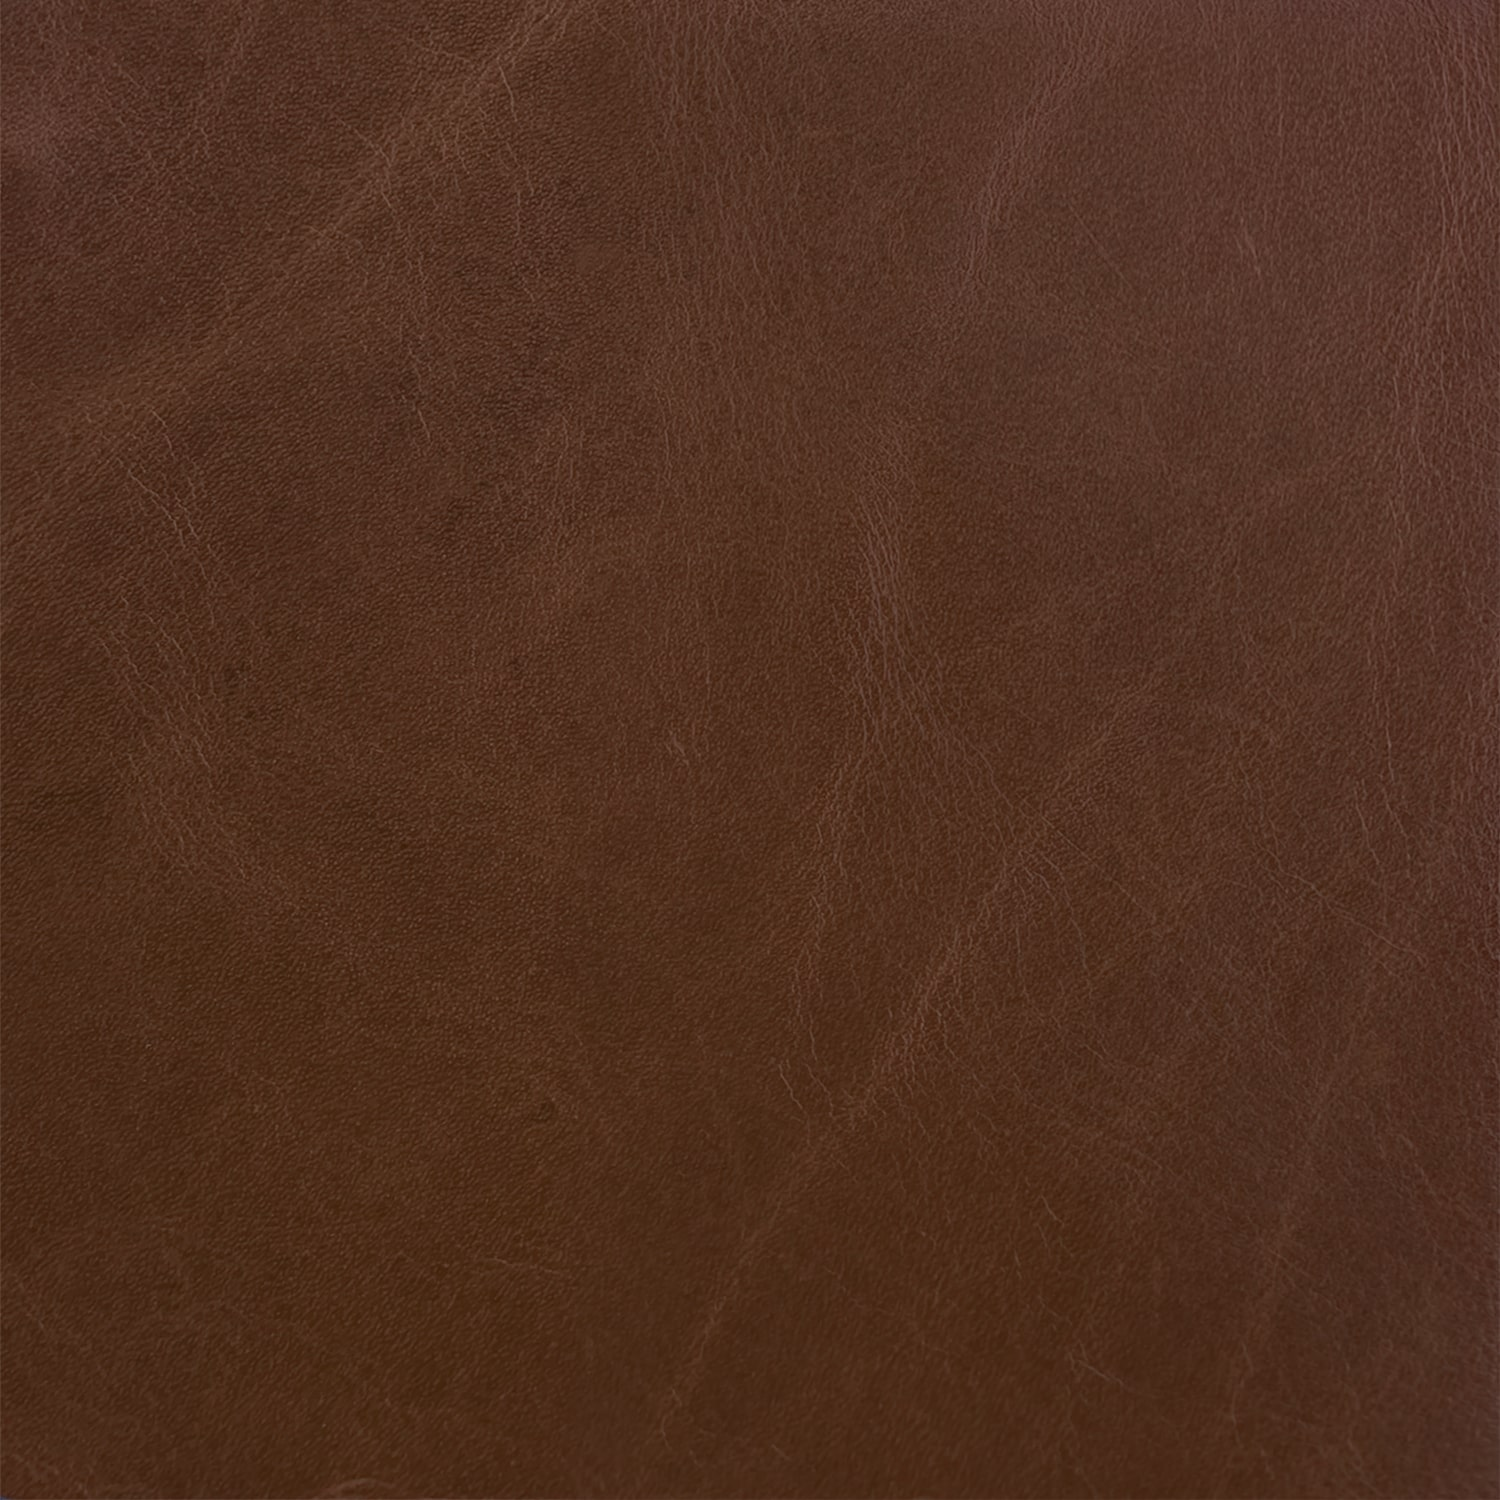 Flagstaff: Smore (grade G): #FLG1628<br>Unique distressed markings, permiated with wax, rich vibrant color; light protection